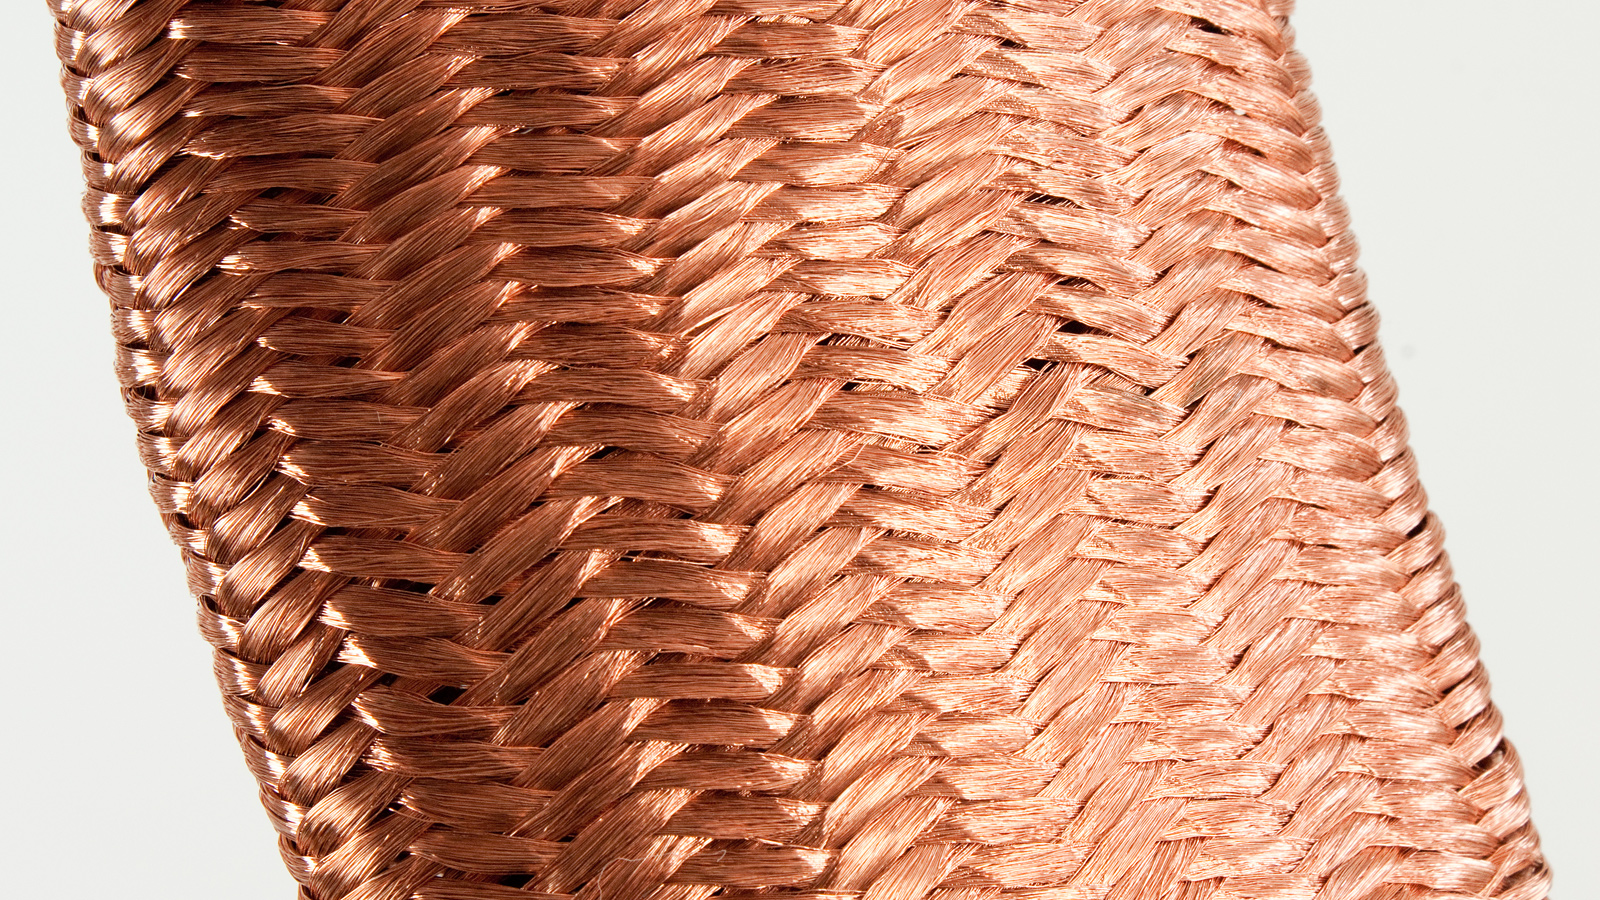 Detail of copper knit. Beautiful, isn't it? We think so!